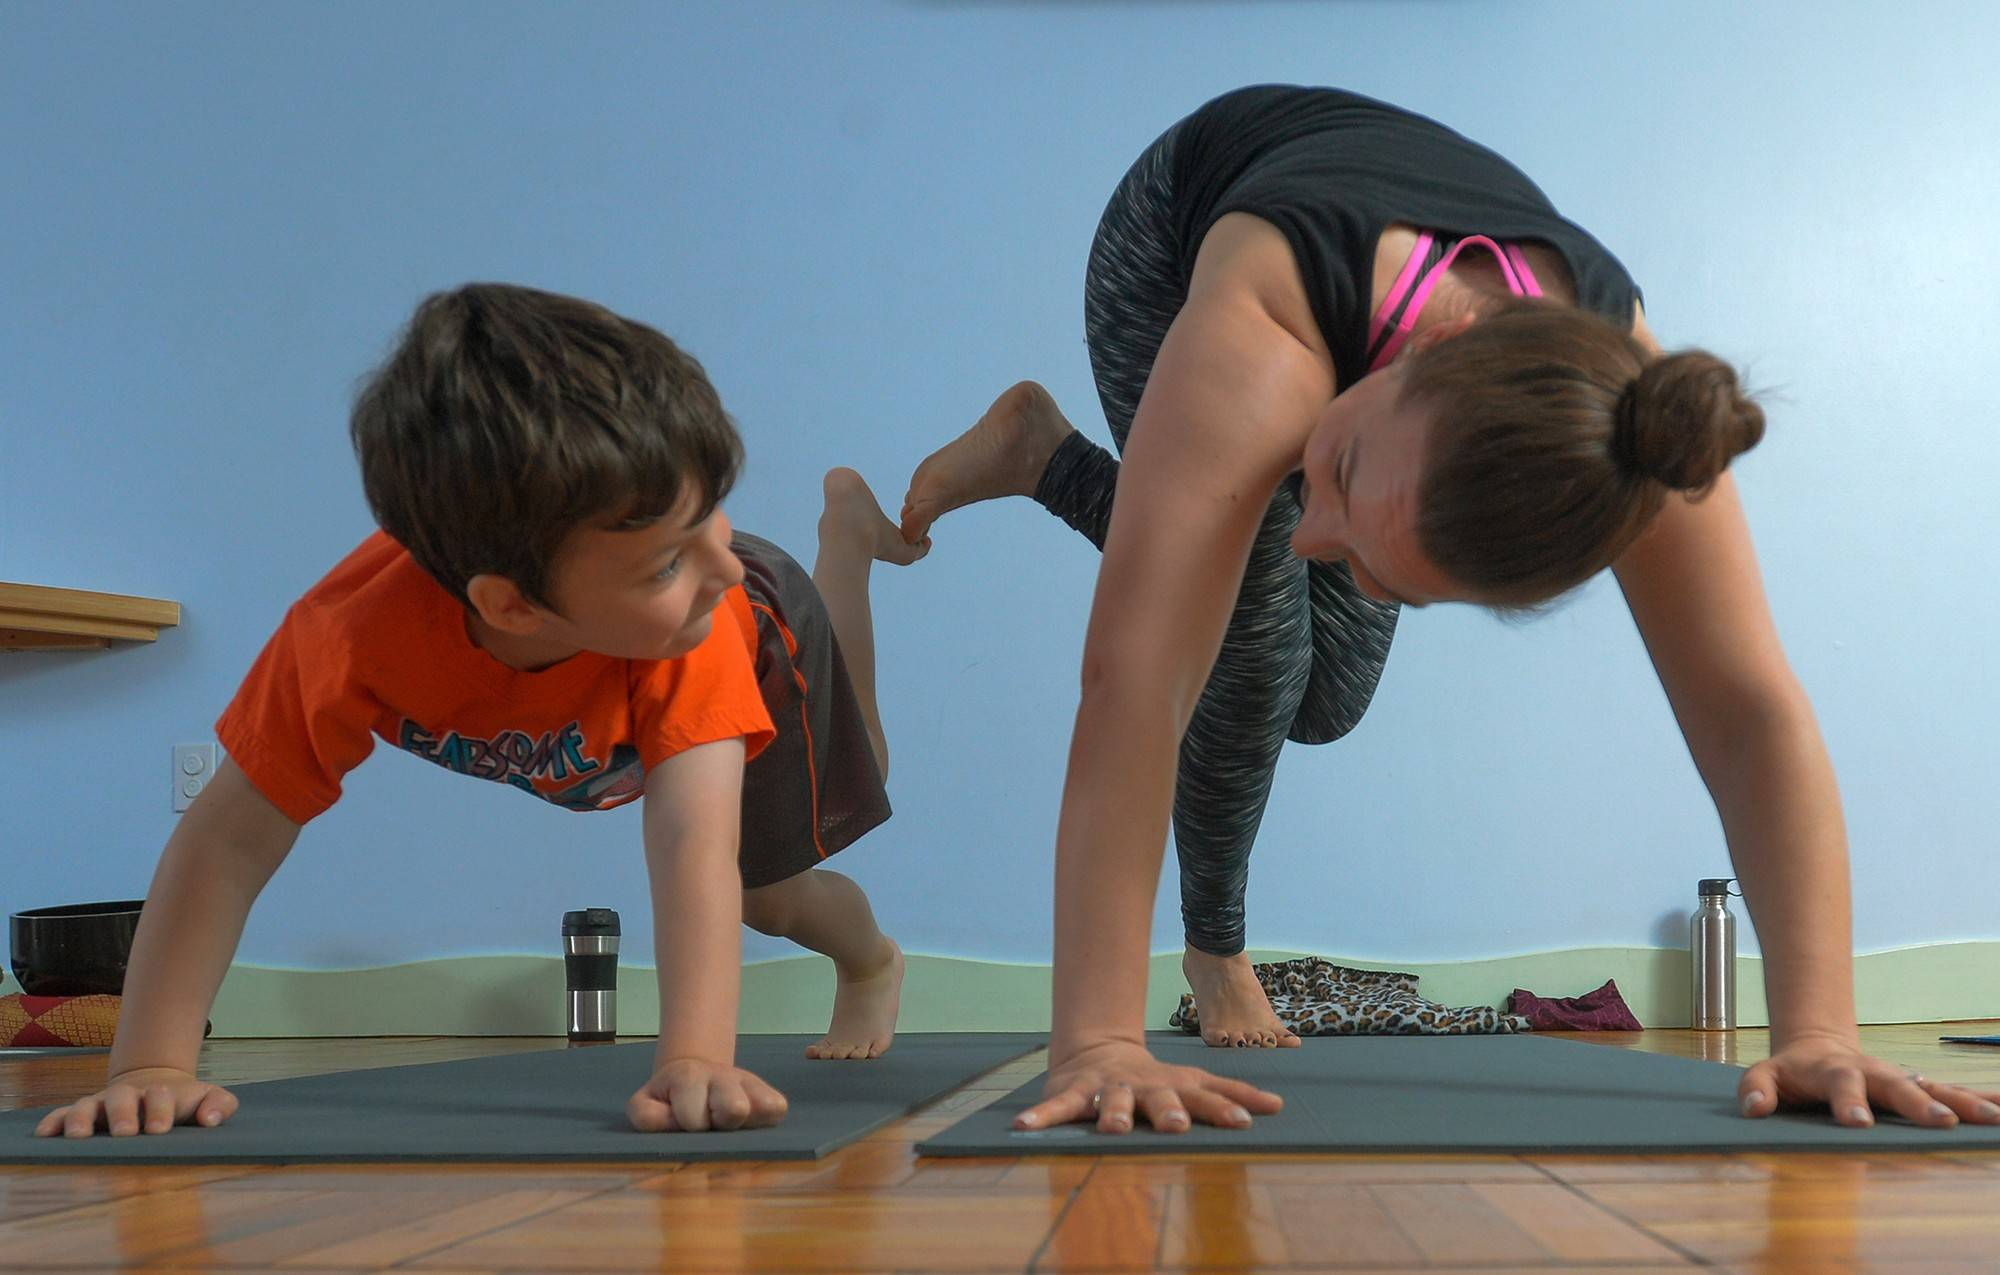 Five-year-old Elias O'Keeffe has no problem keeping up with his mom, Deanna Ortiz, during a family yoga class at Circle Yoga in Washington on a Saturday morning